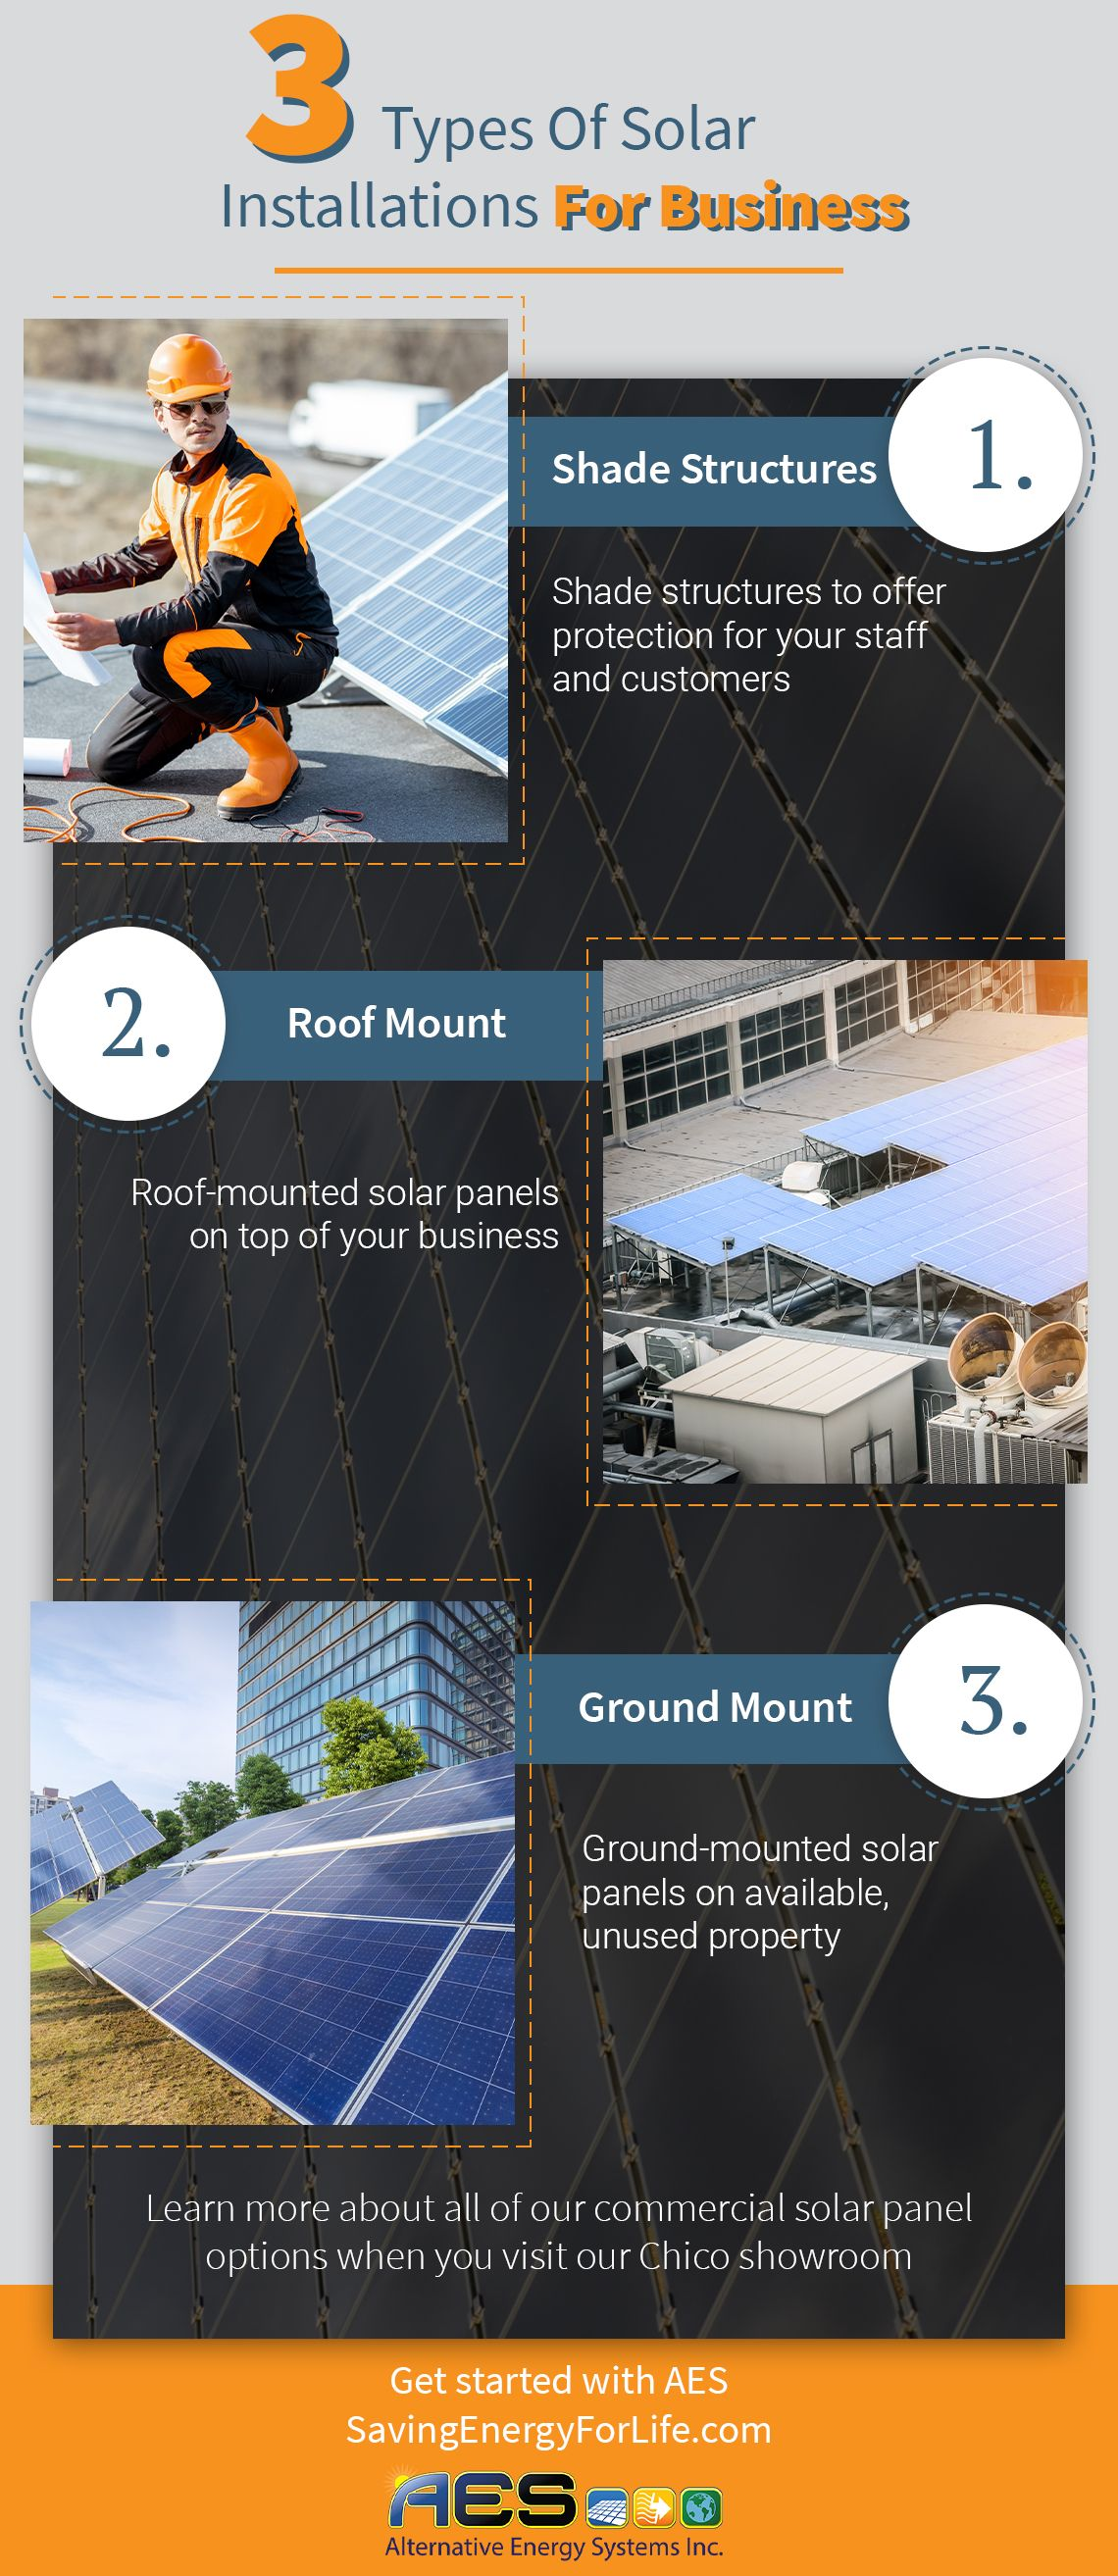 3 Types Of Solar Installations For Business.jpg